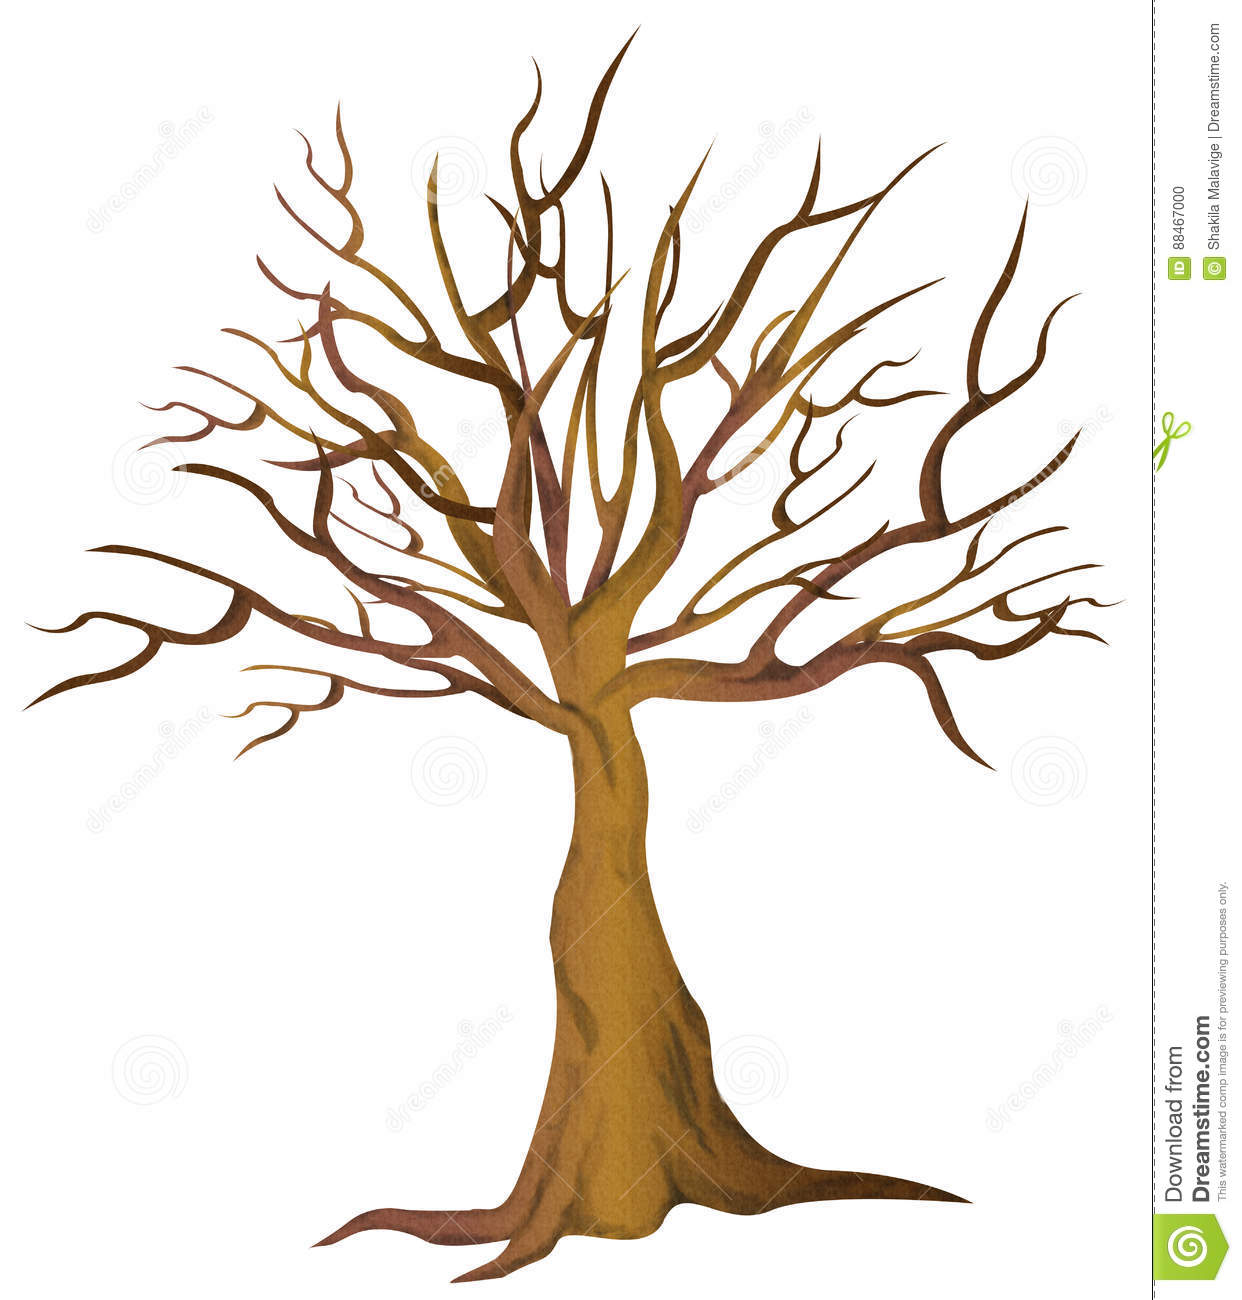 Bare Tree No Leaves Stock Photo. Illustration Of Isolated